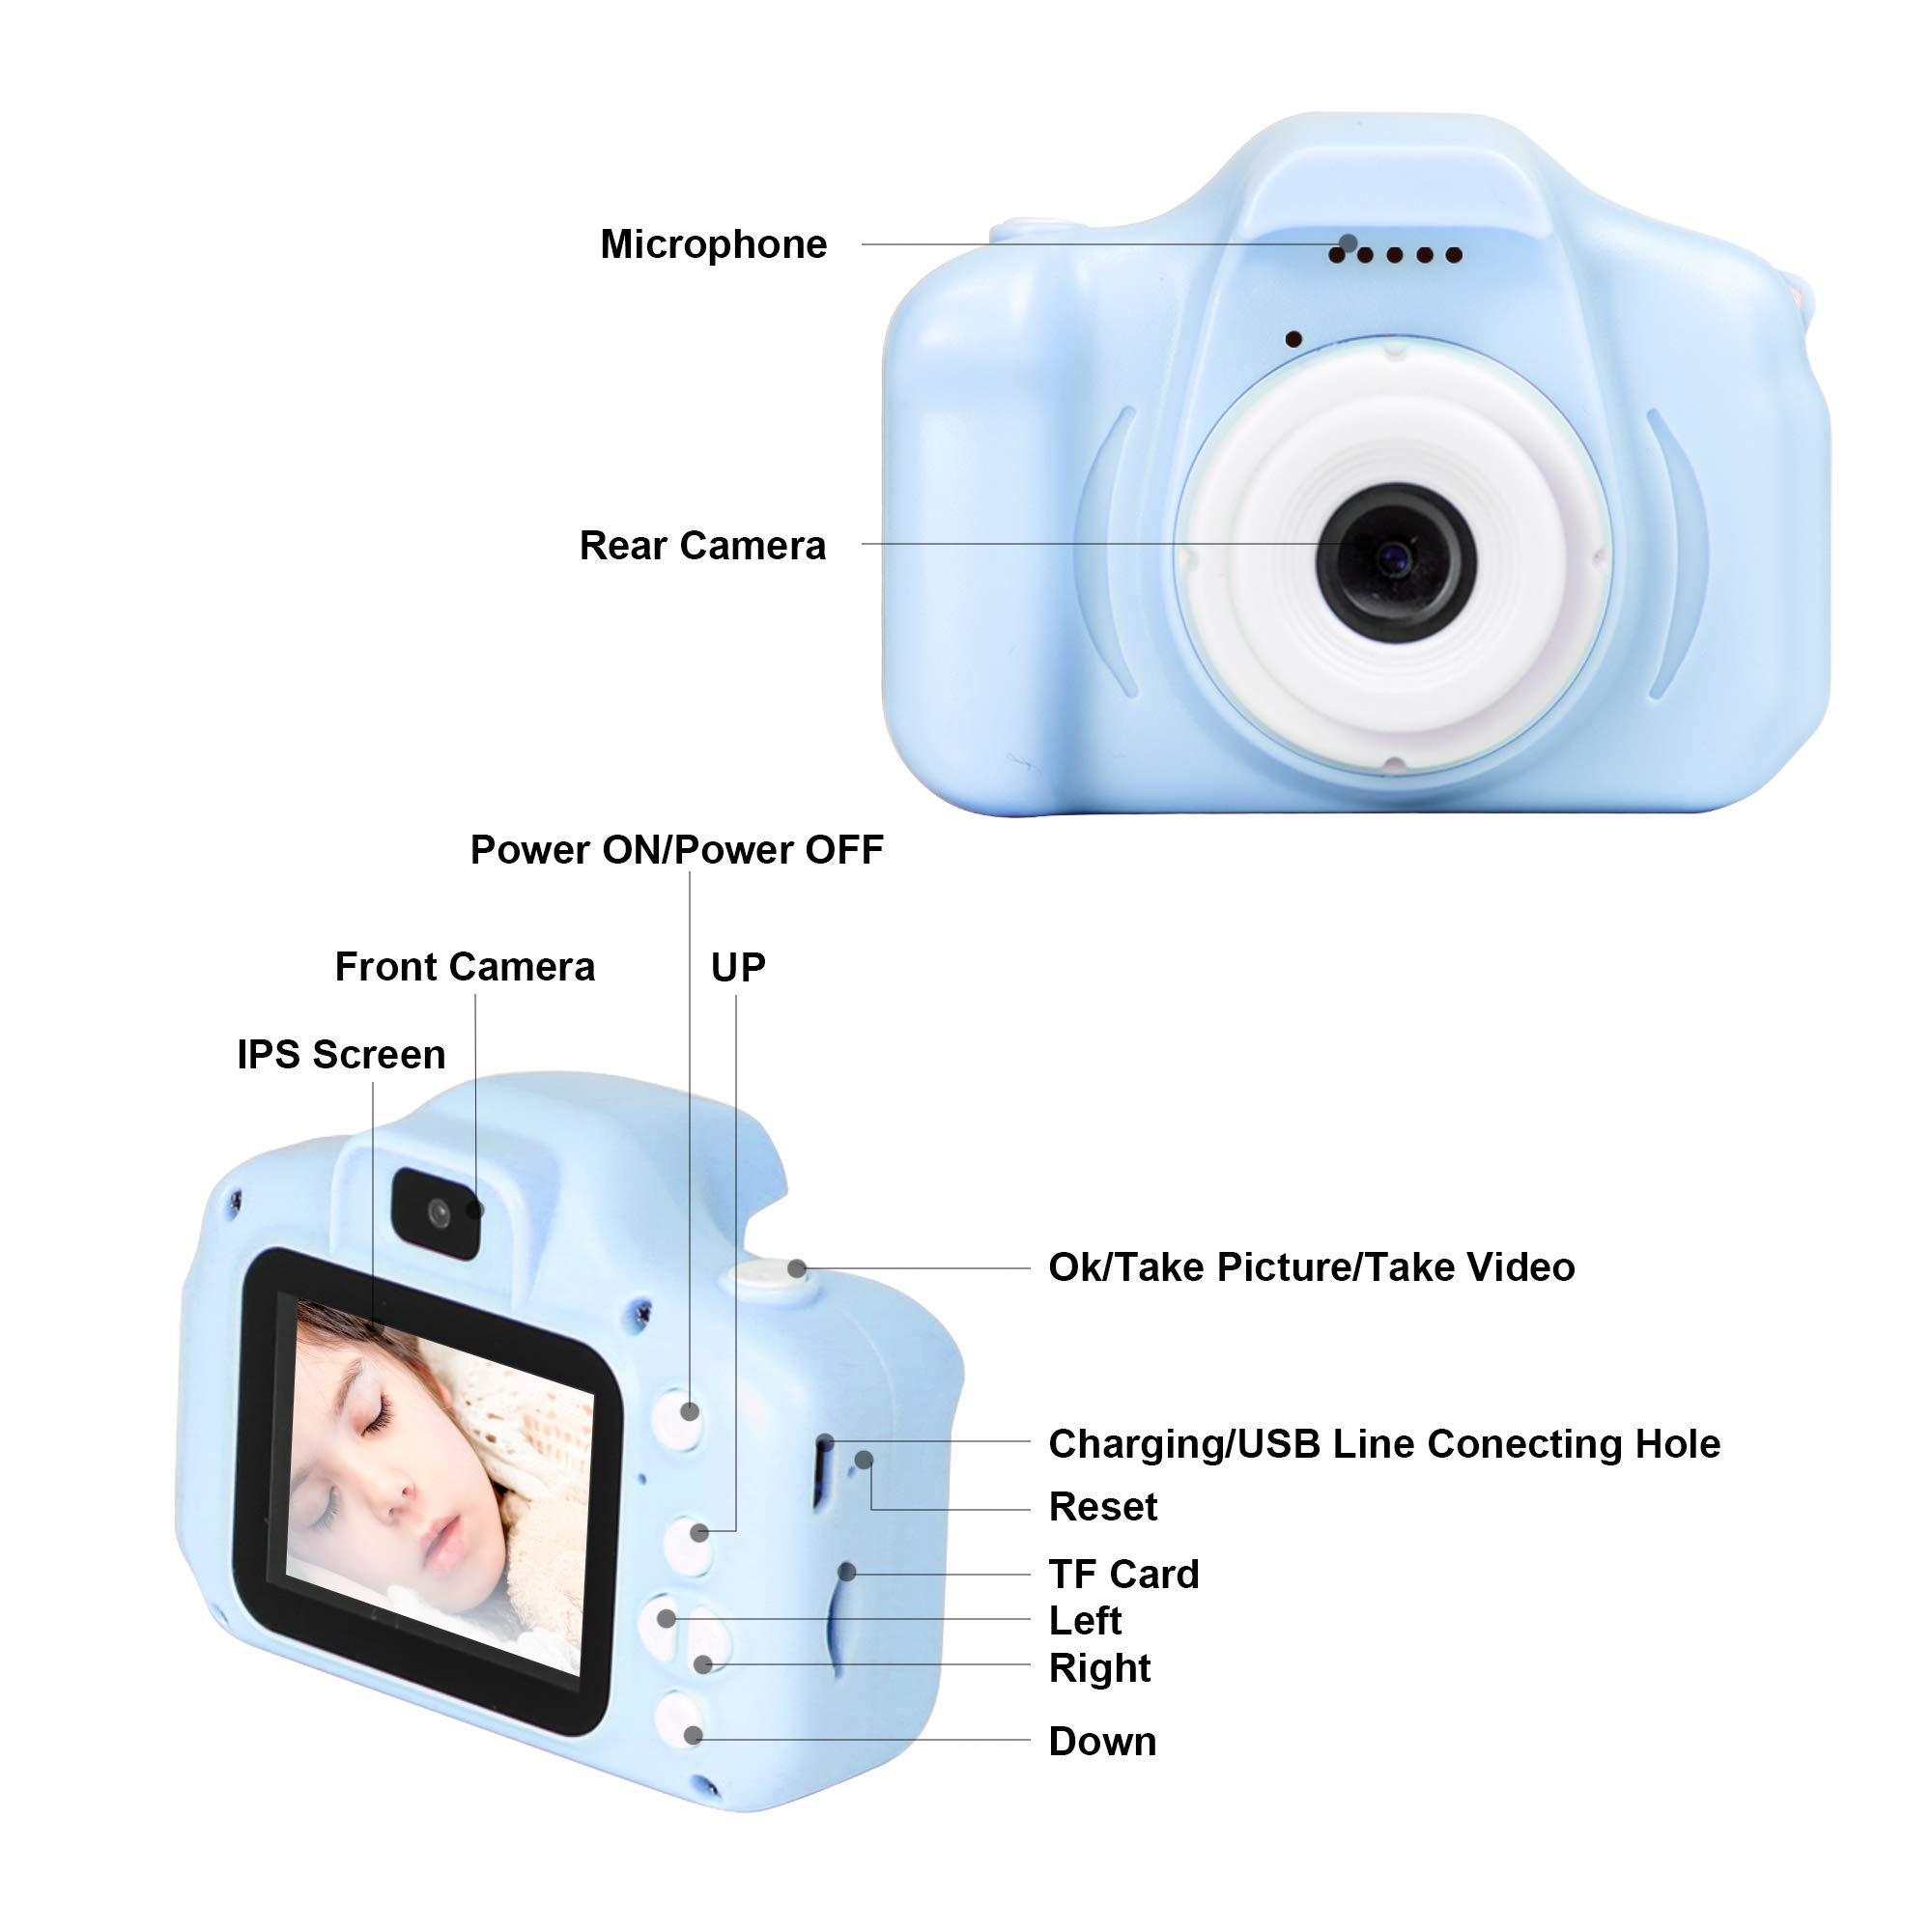 le-idea Kids Camera 1080P Dual 12MP Mini 2.0 inch IPS Display Shockproof Child Digital Selfie HD Camera Camcorder Gifts for 3-10 Year Old Girls & Boys Outdoor Play, Blue (32GB Memory Card Included) by le-idea (Image #7)